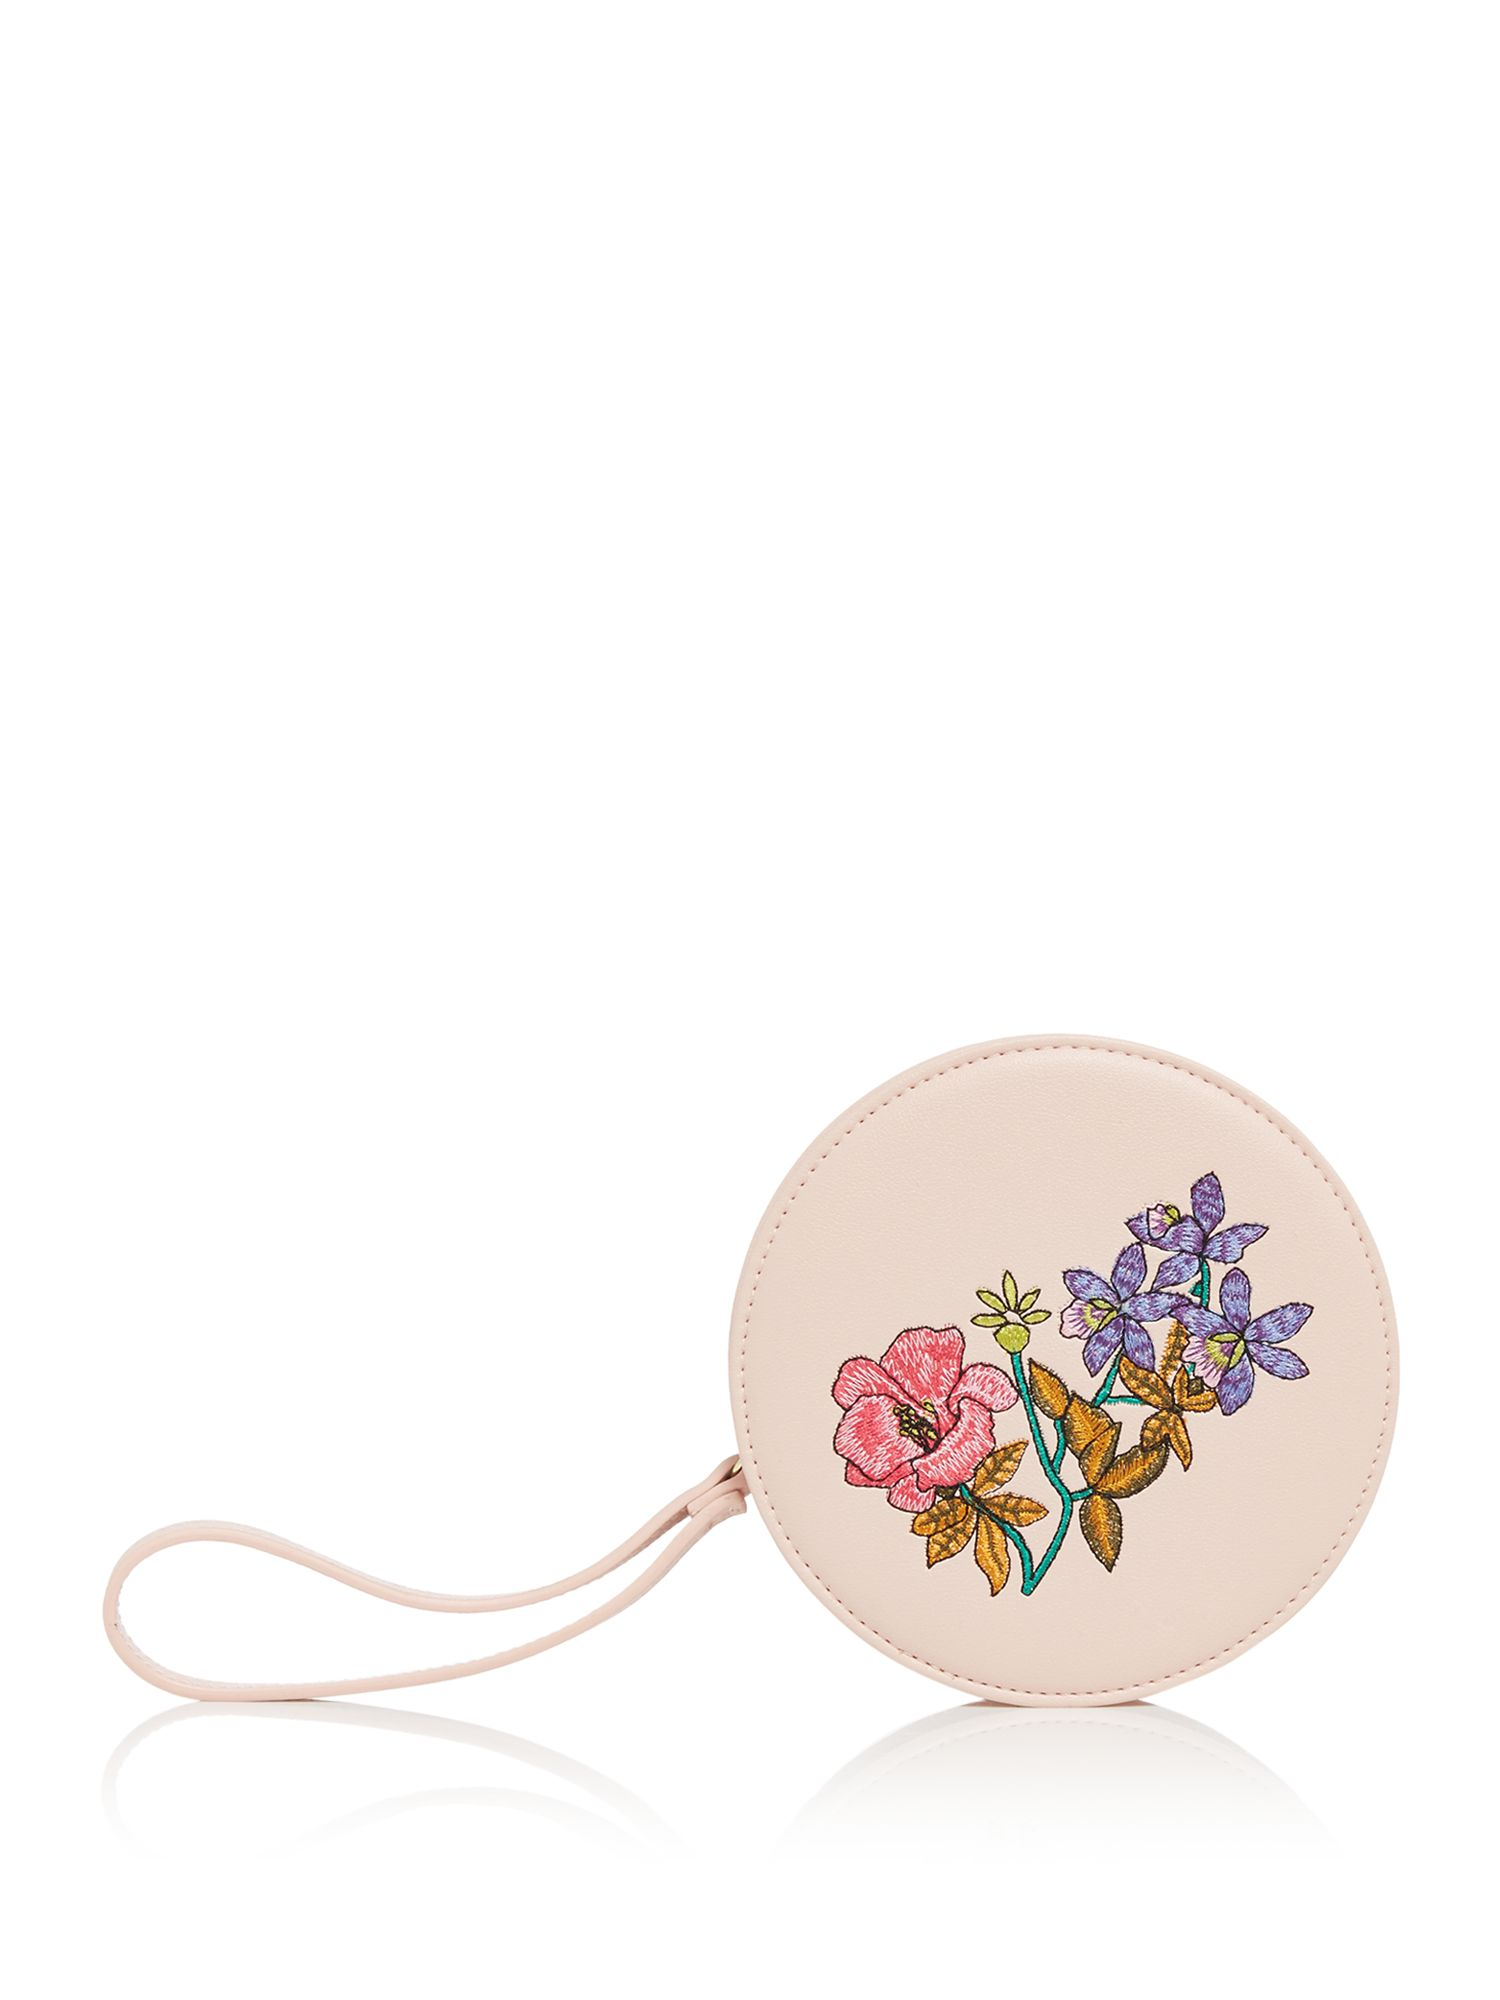 Therapy Cassie Embroidered Circle Purse, Nude